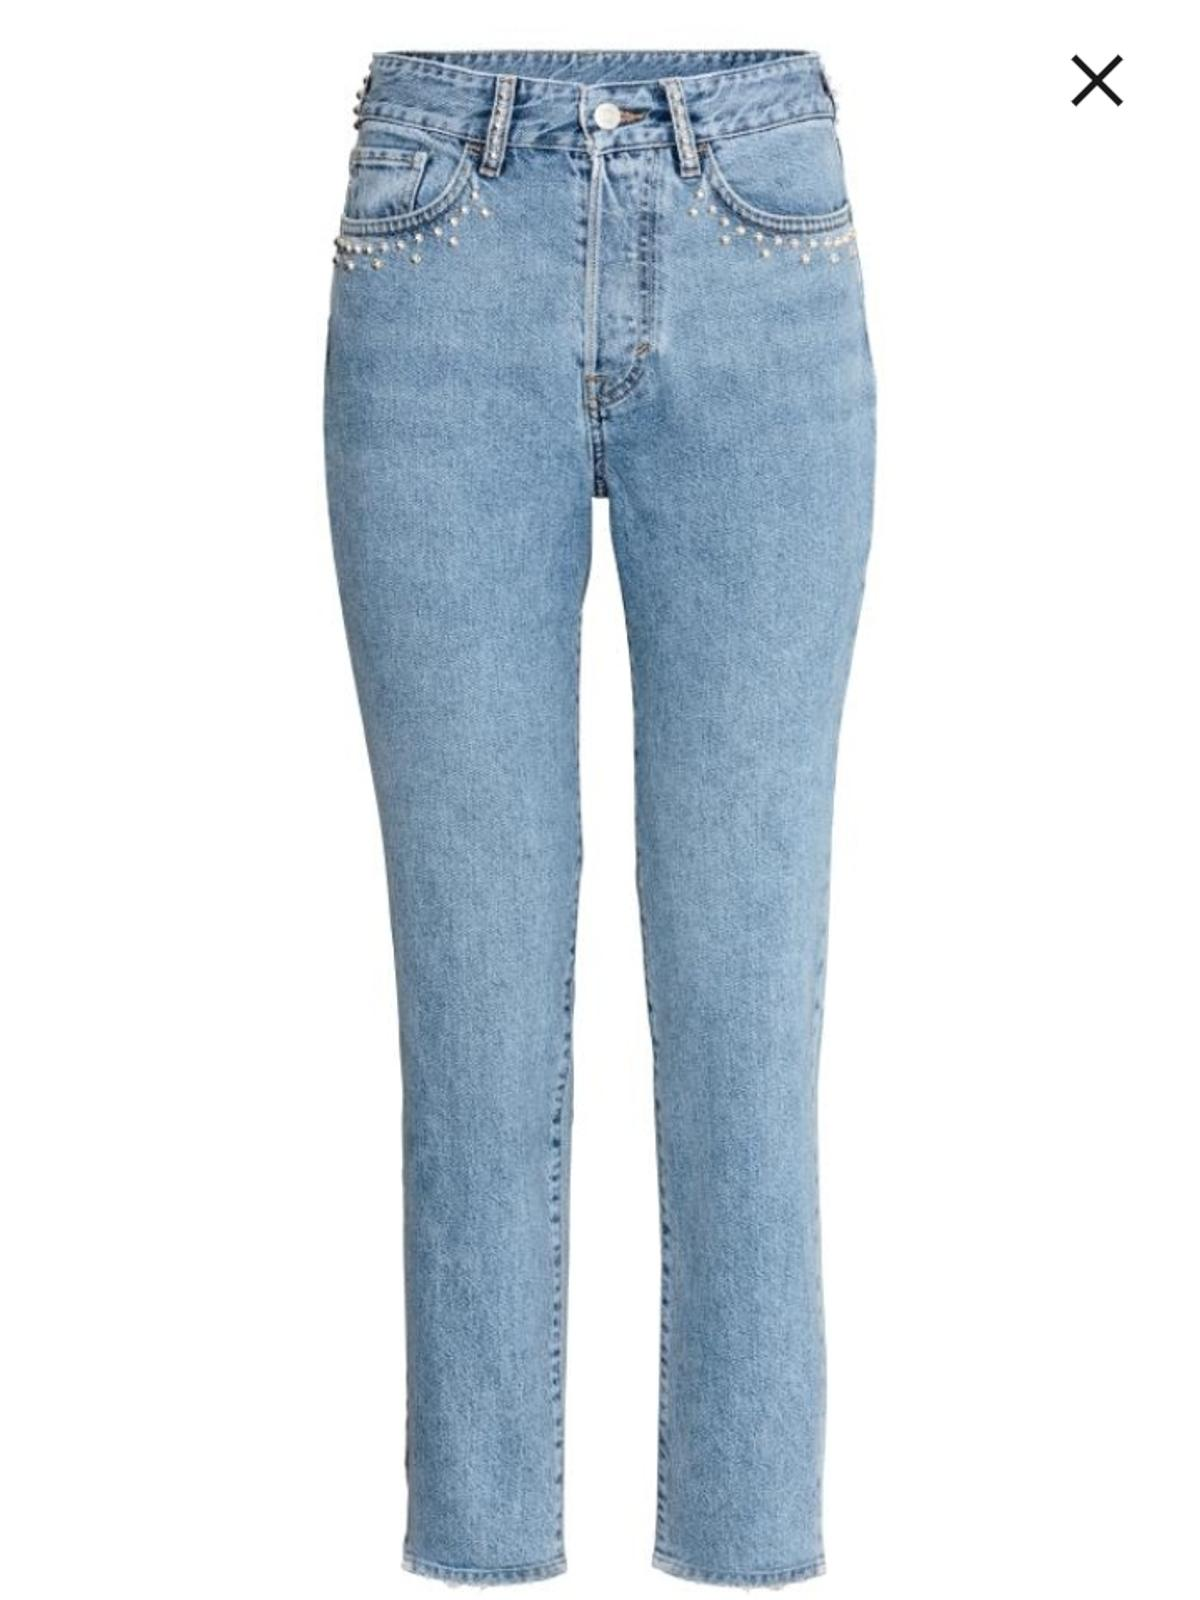 c616607abc jeans mom fit h&m